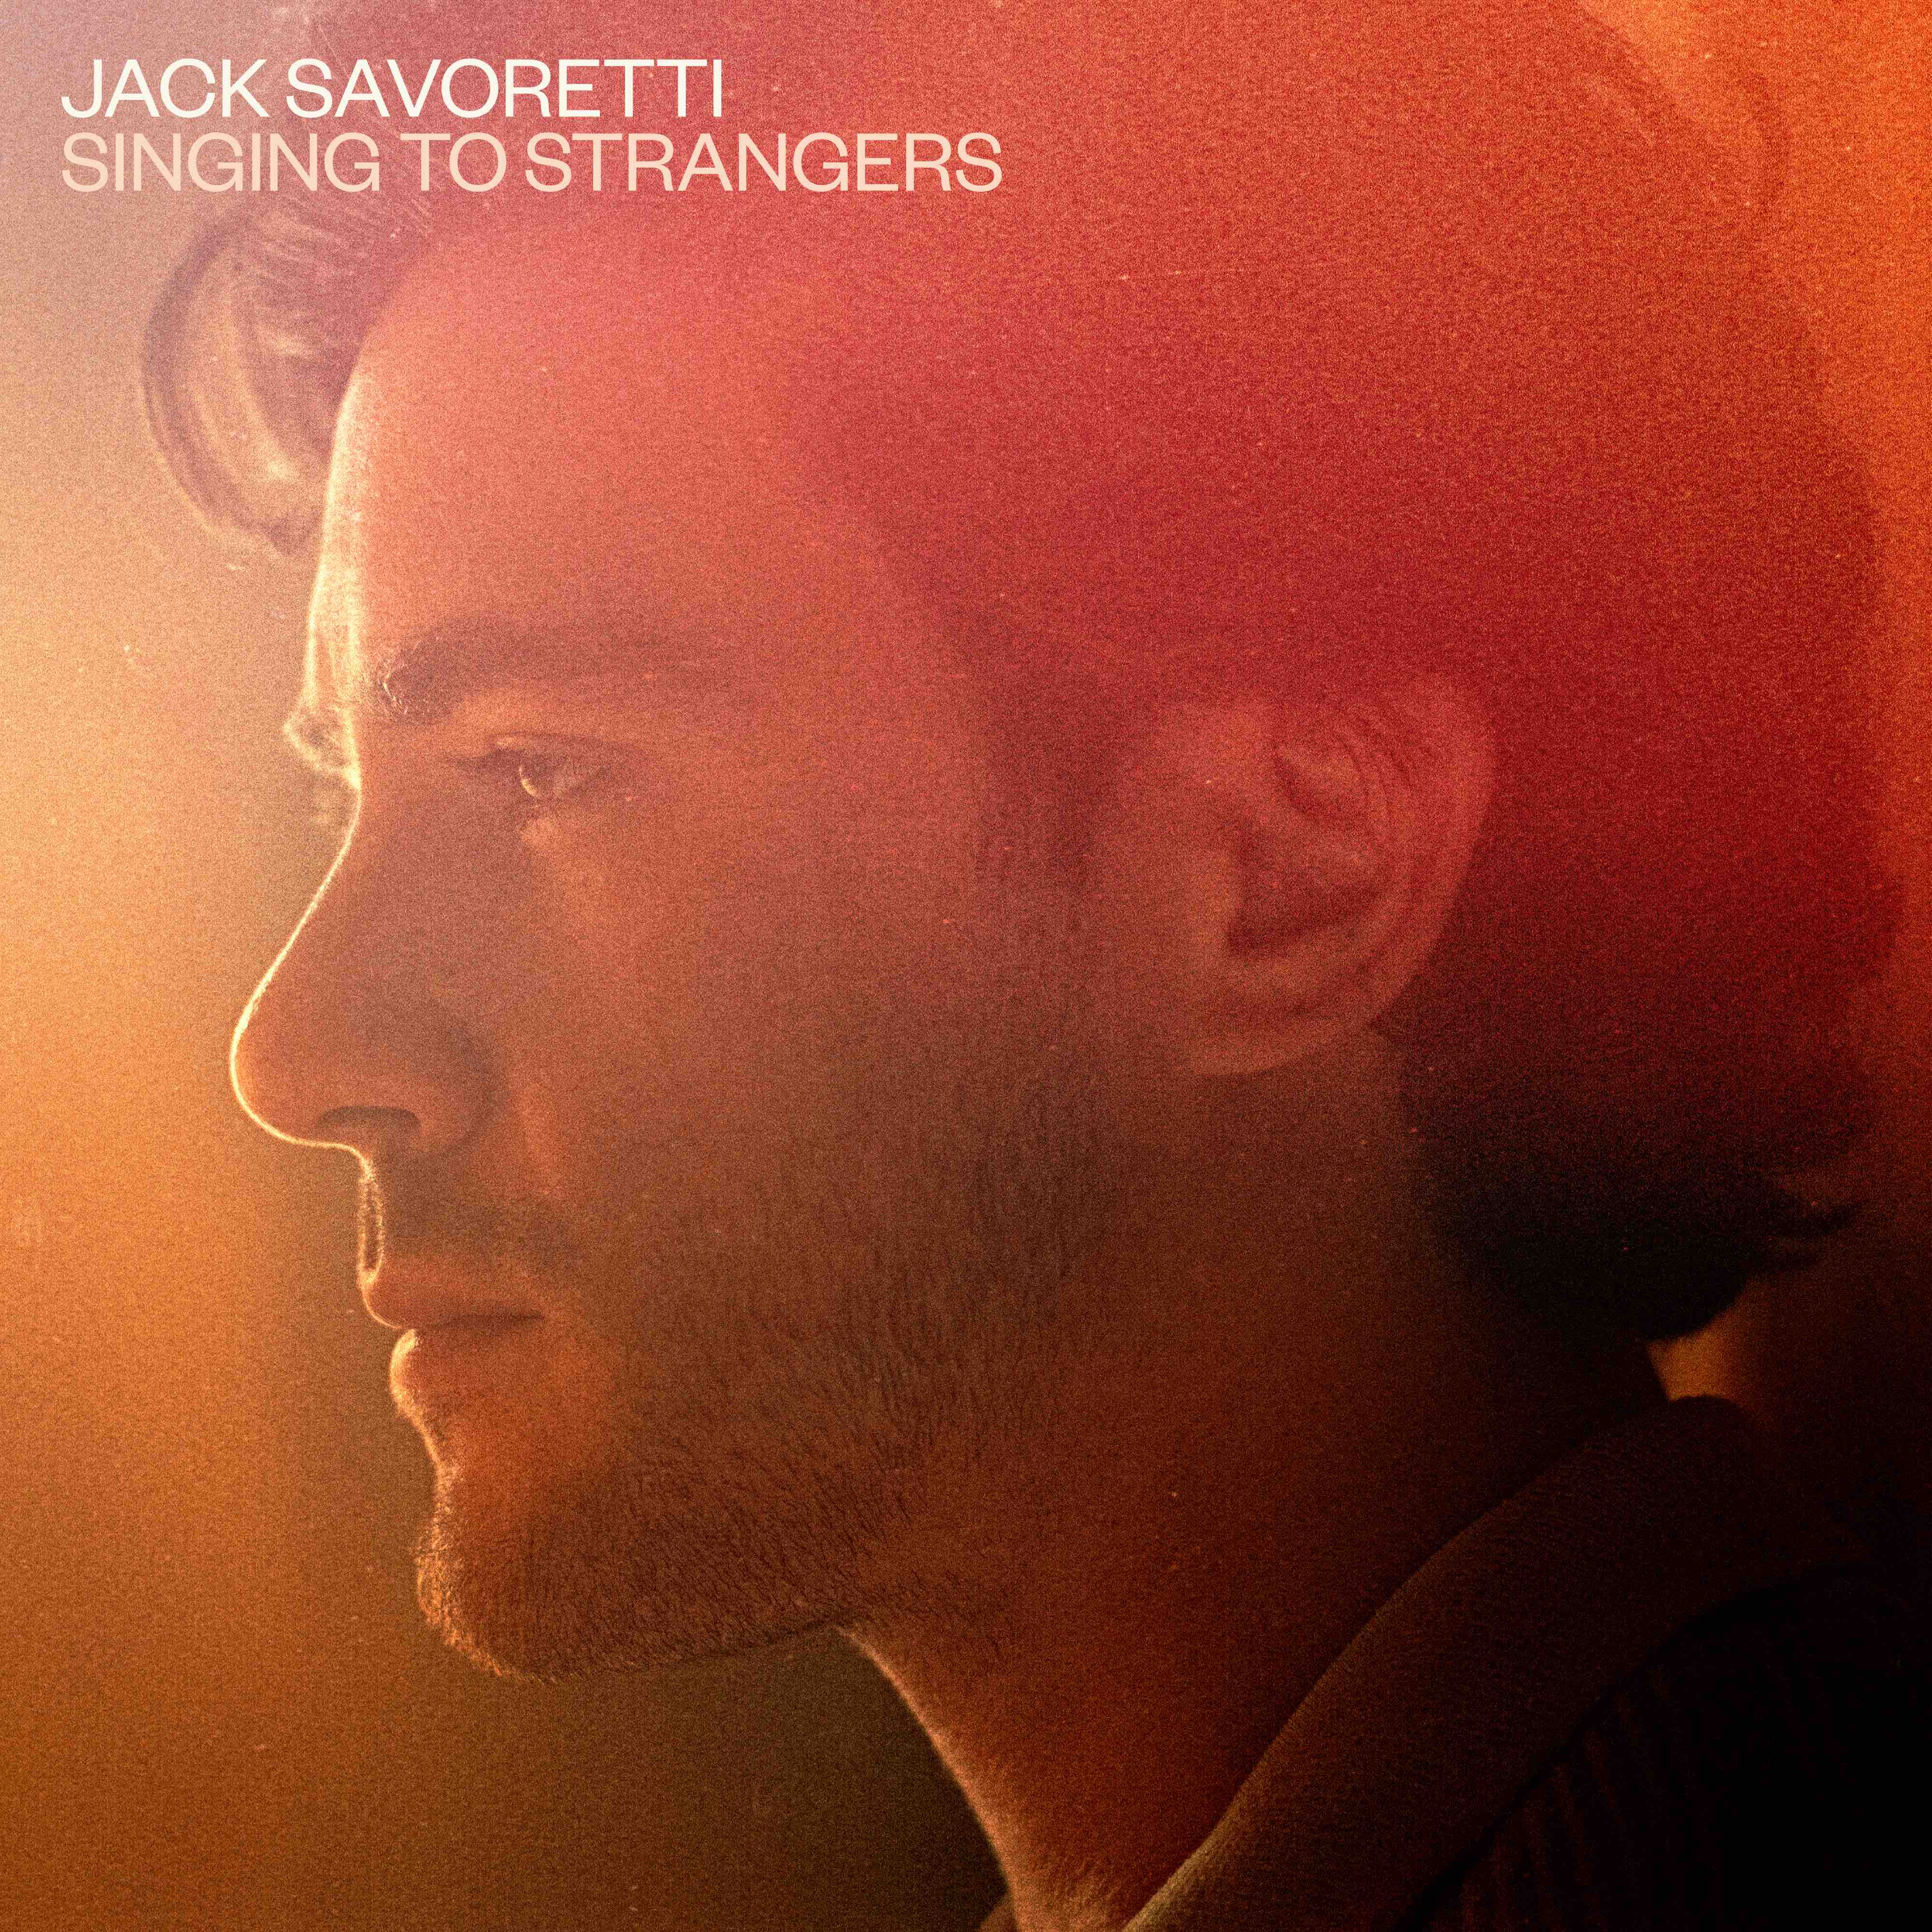 Album art for Jac Savoretti's 'Singing To Strangers'